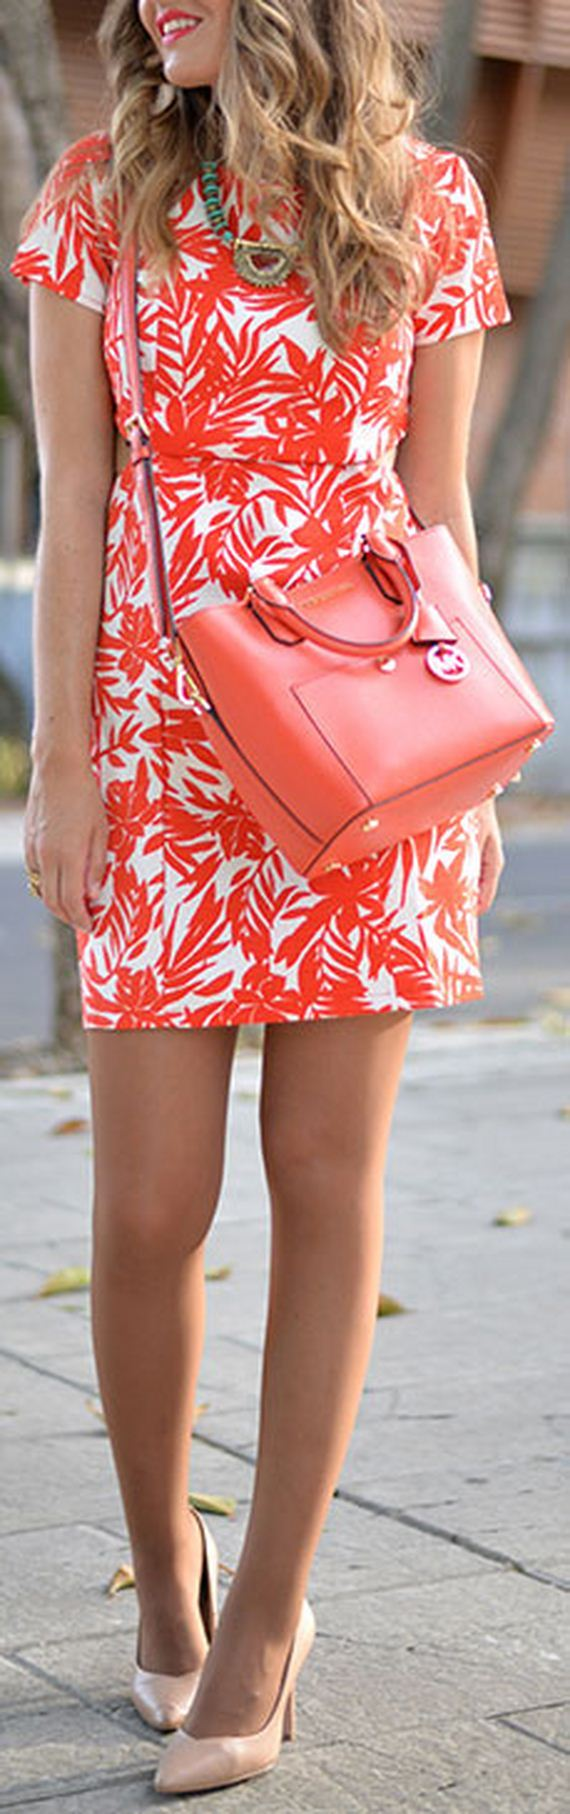 02-Cute-Summer-Outfits